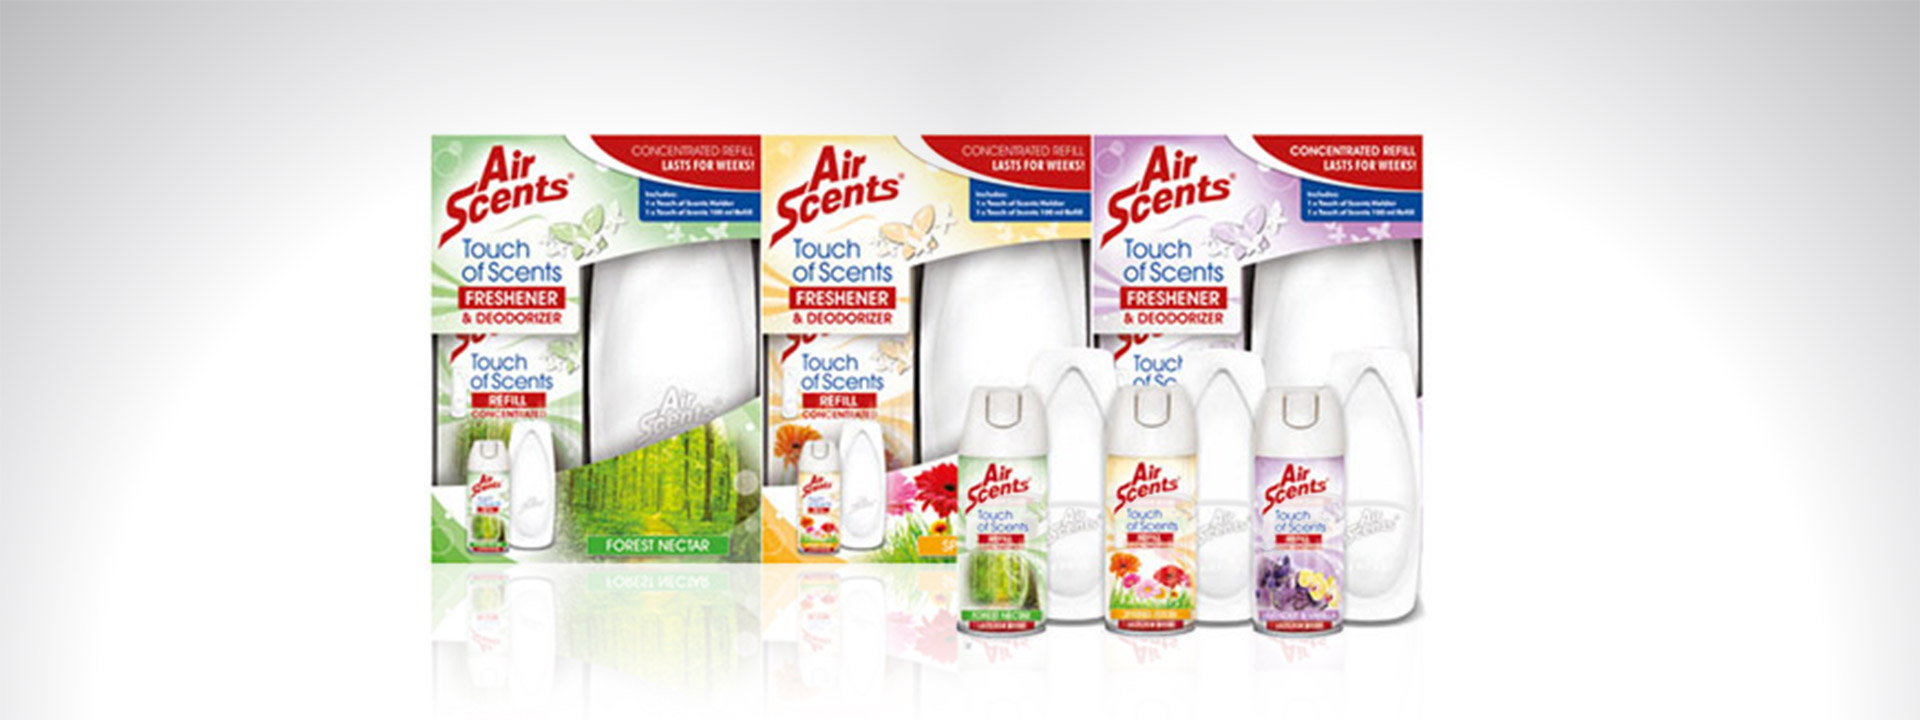 airscents-touch-of-scents-header